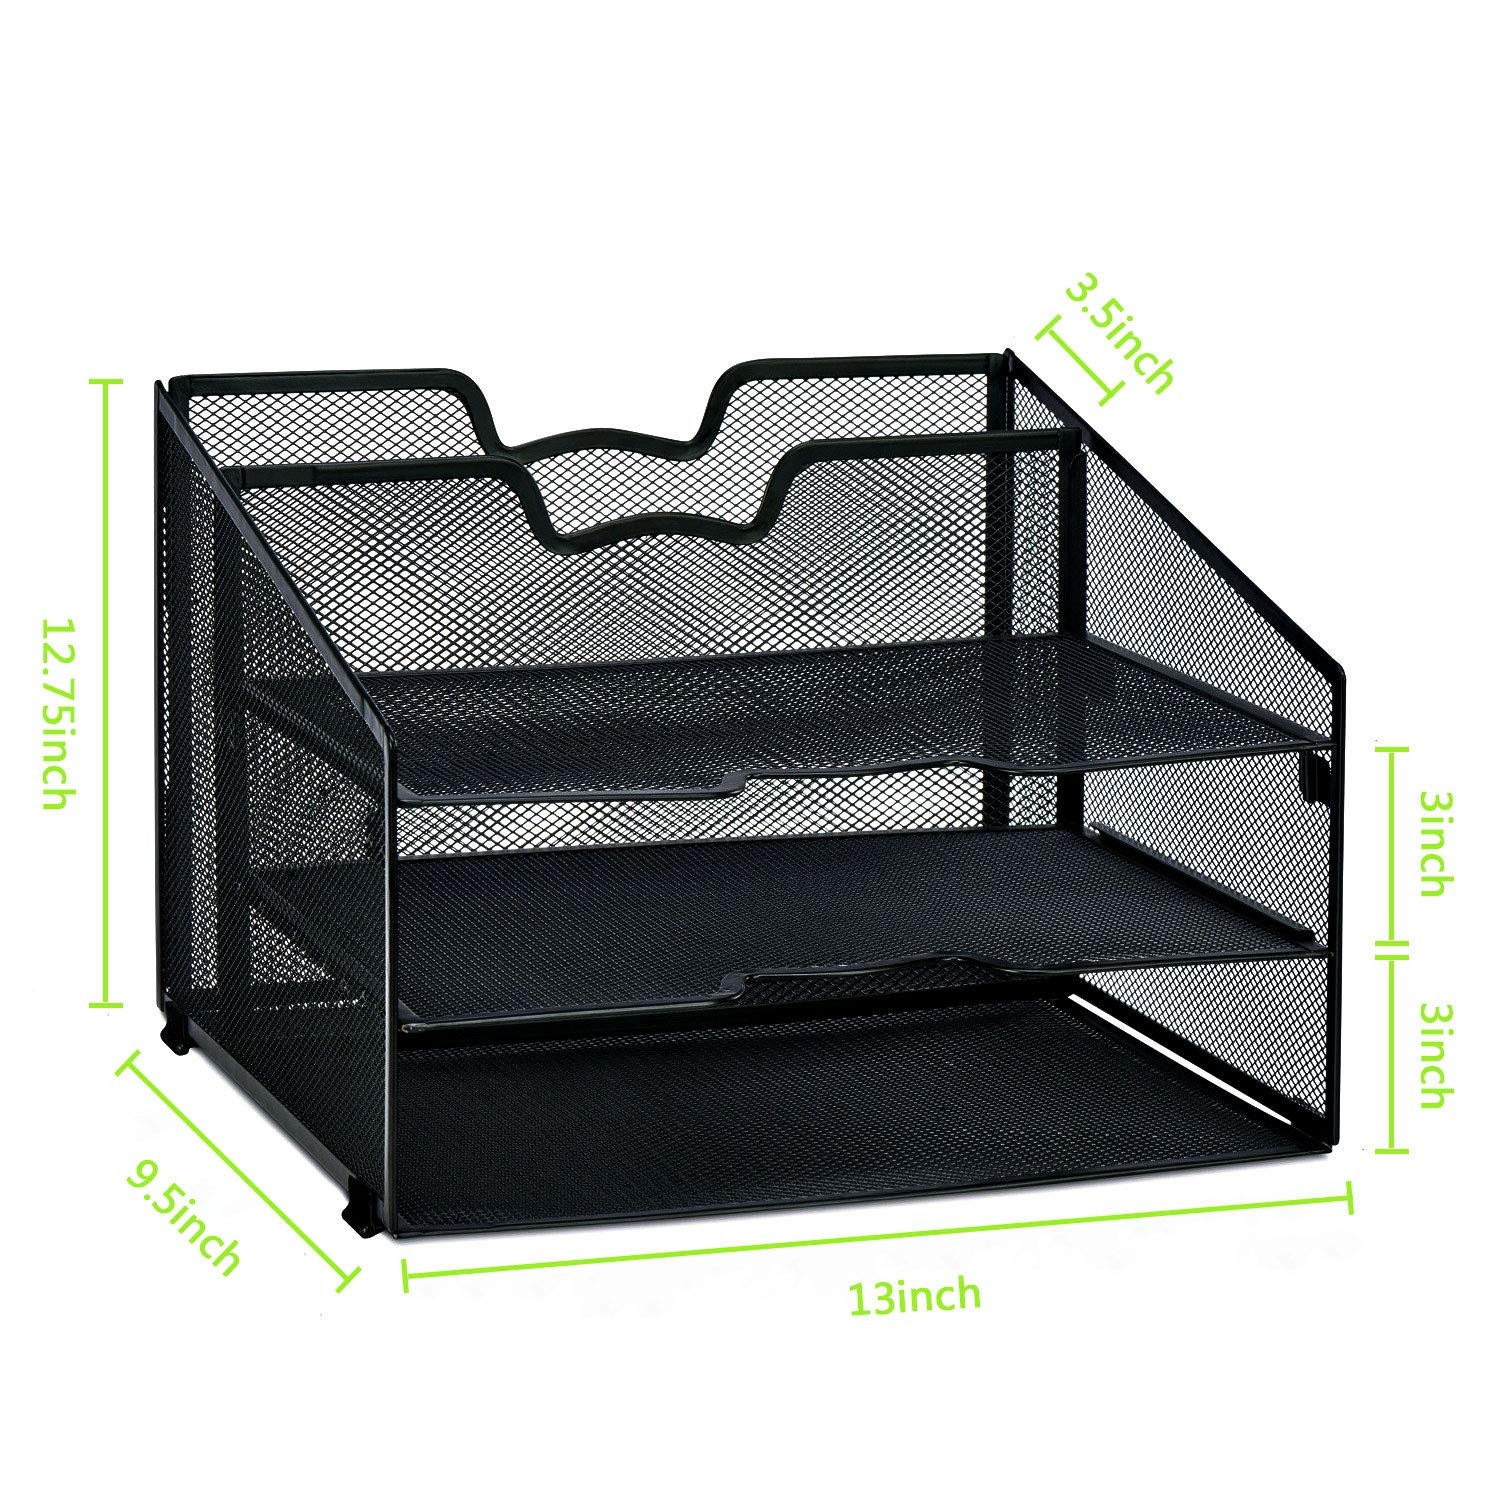 Black Rackarster Mesh Desk Organizer Desktop File Organizer with 3 Paper Organizer Letter Tray and a Vertical Separate Compartment